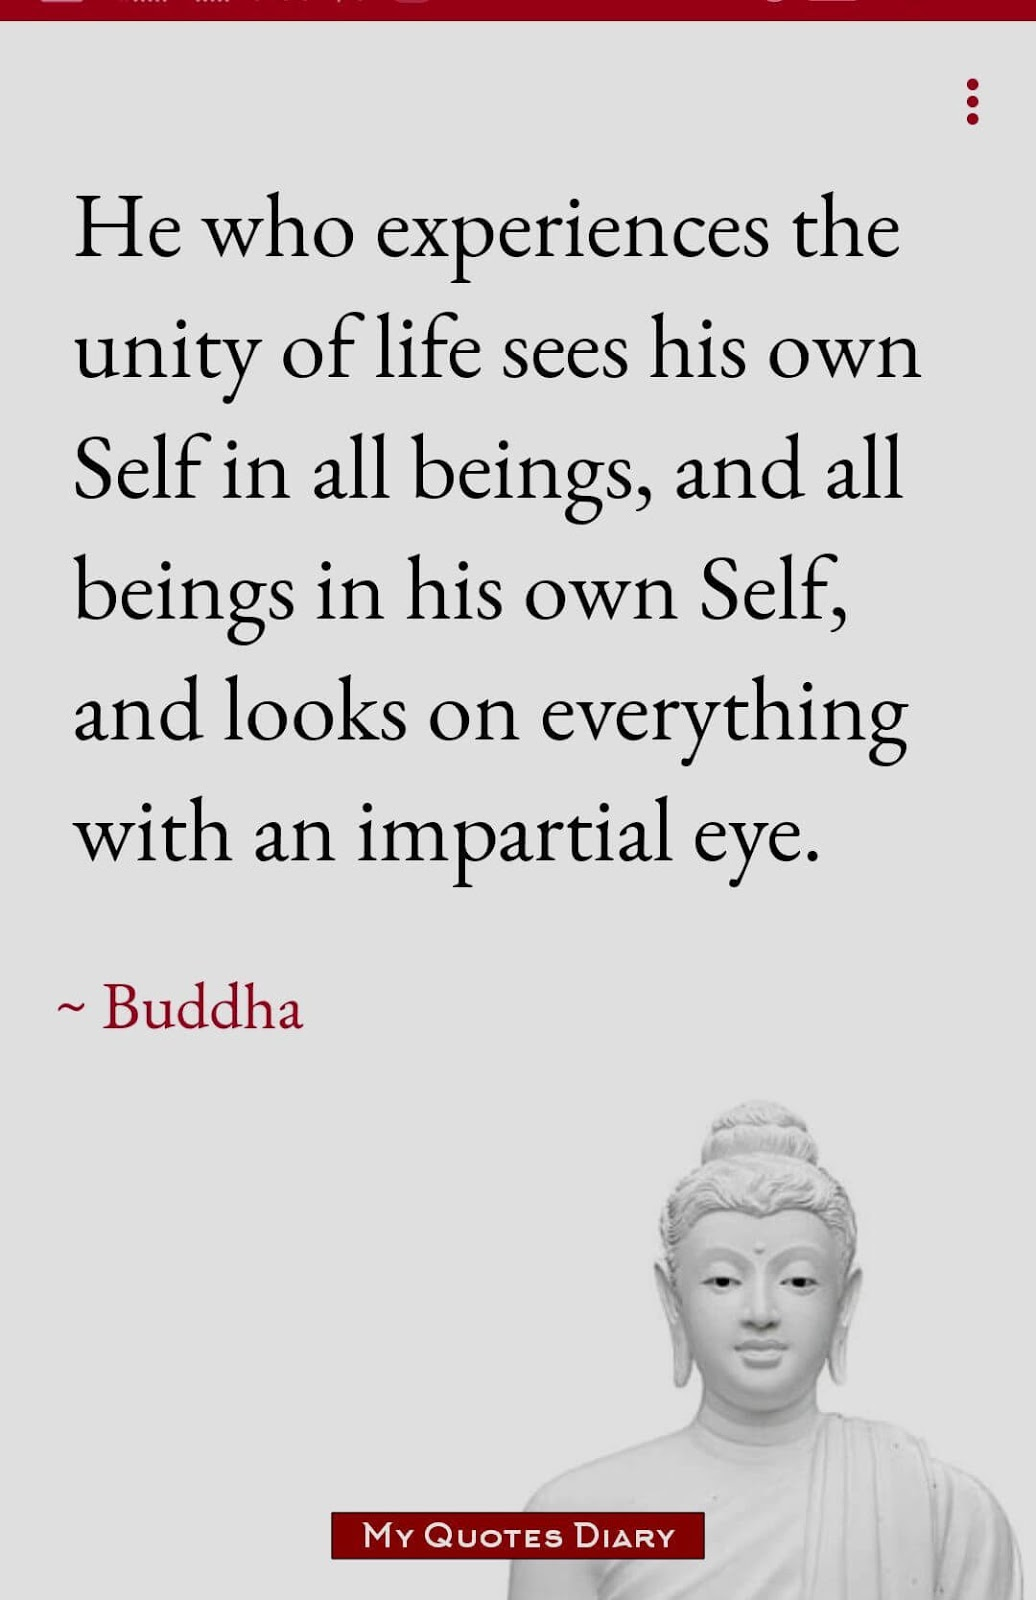 quotes from buddha with image